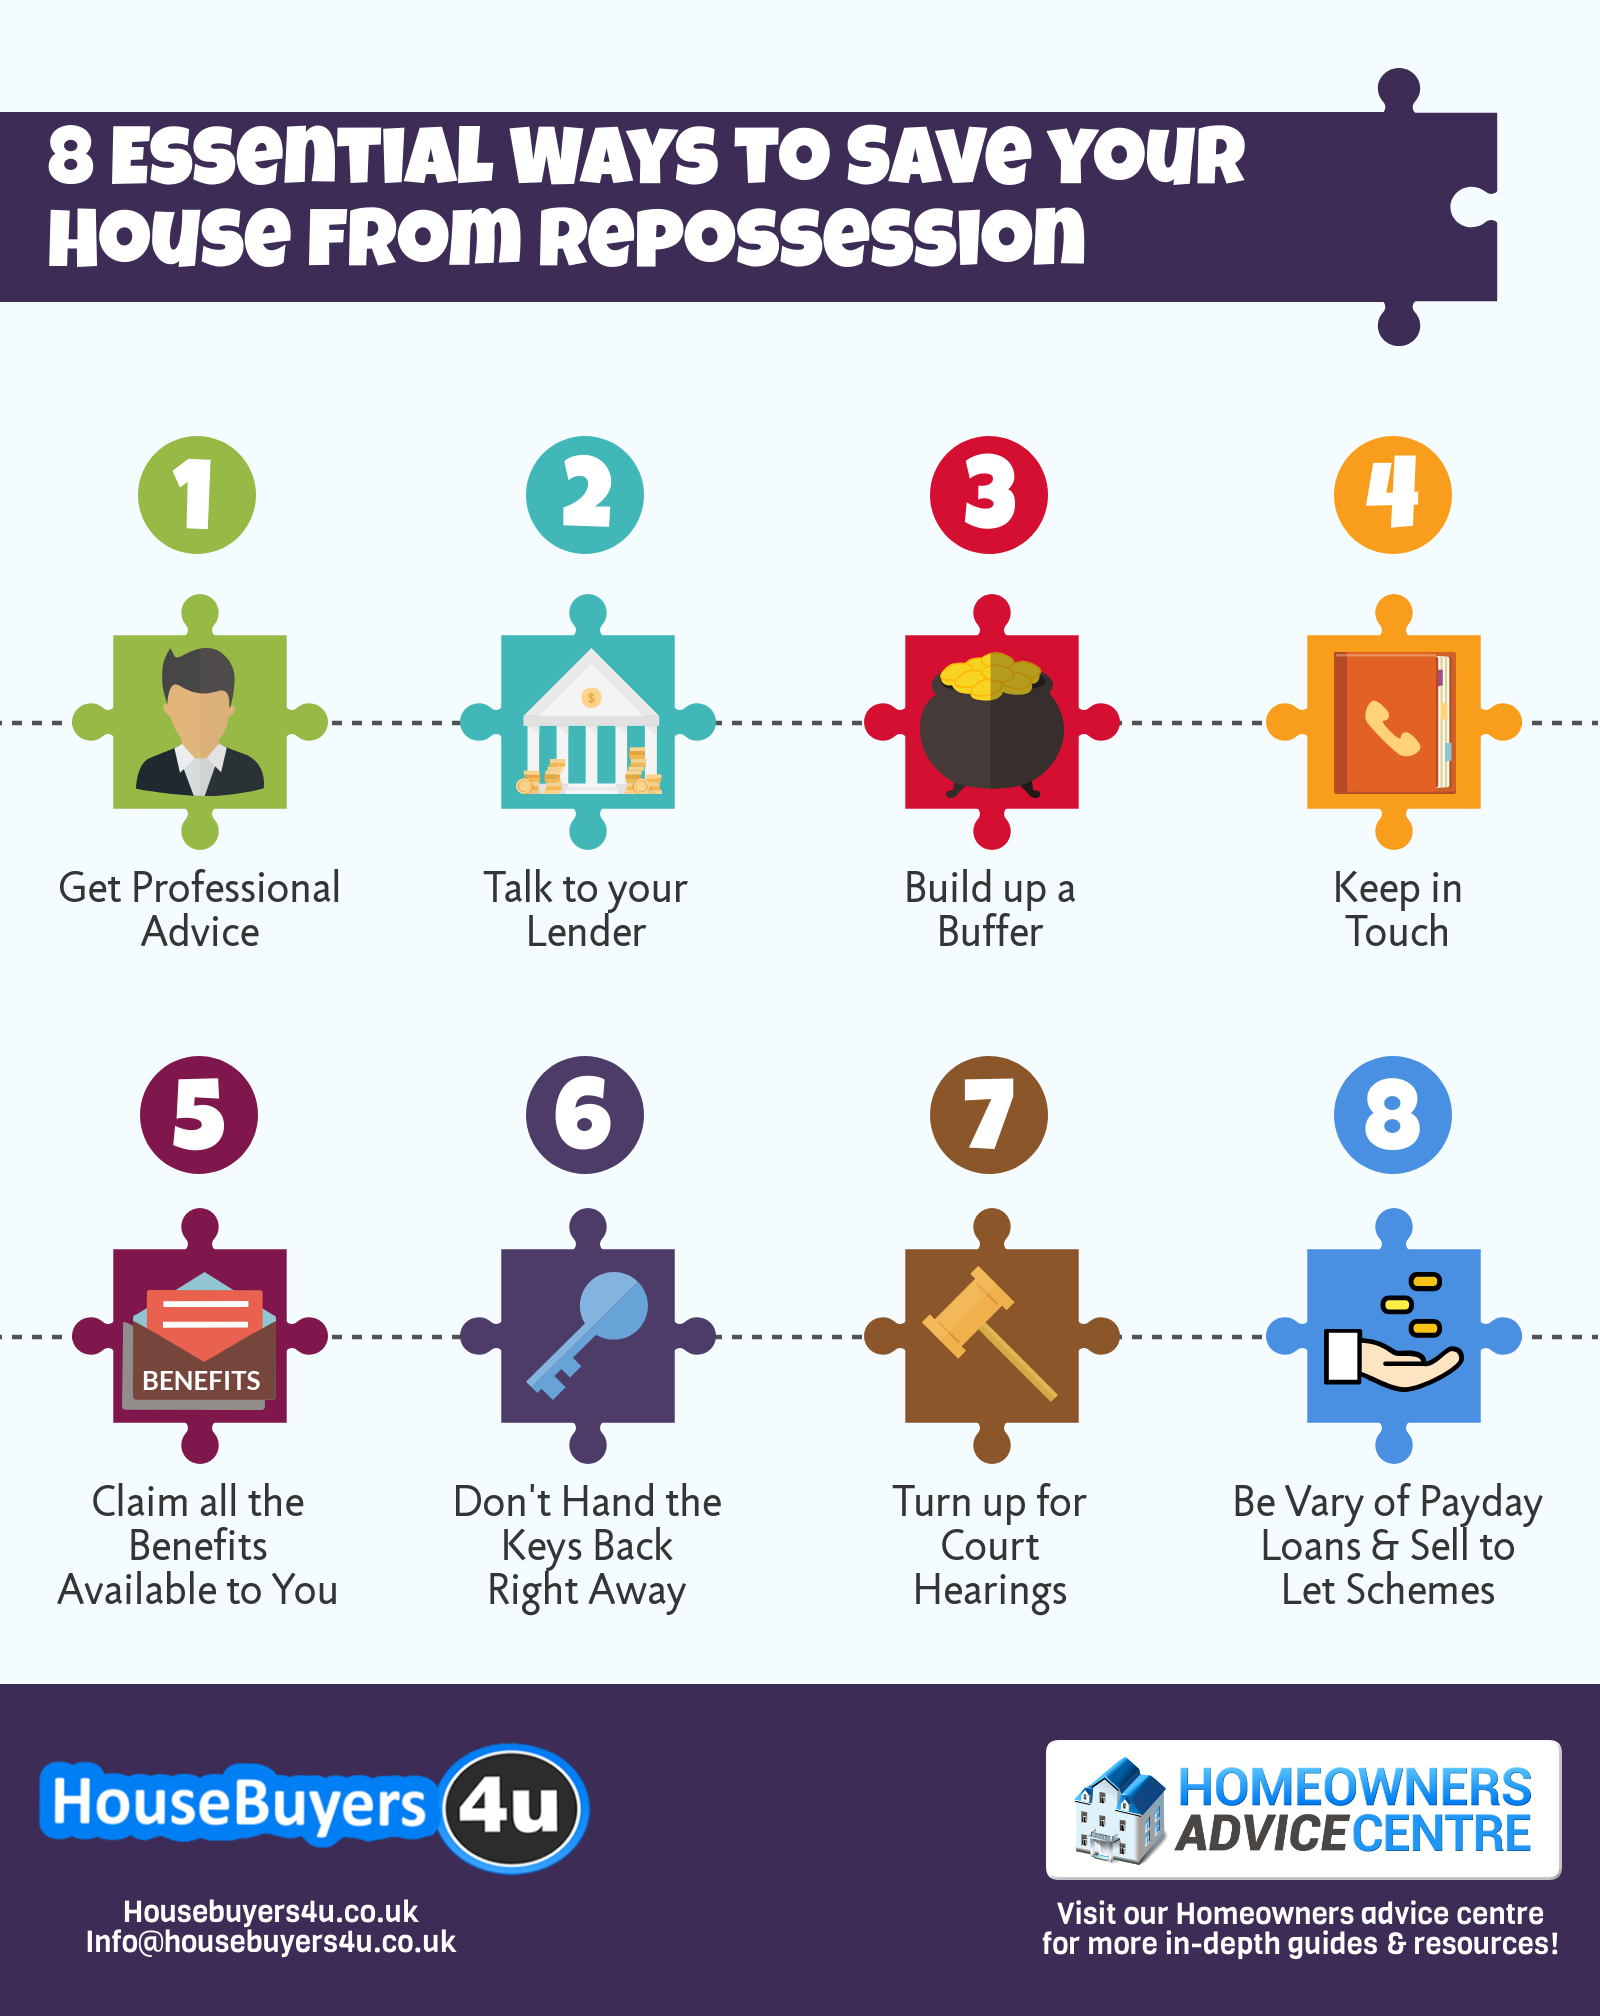 8 Essential Ways to Save your House from Repossession